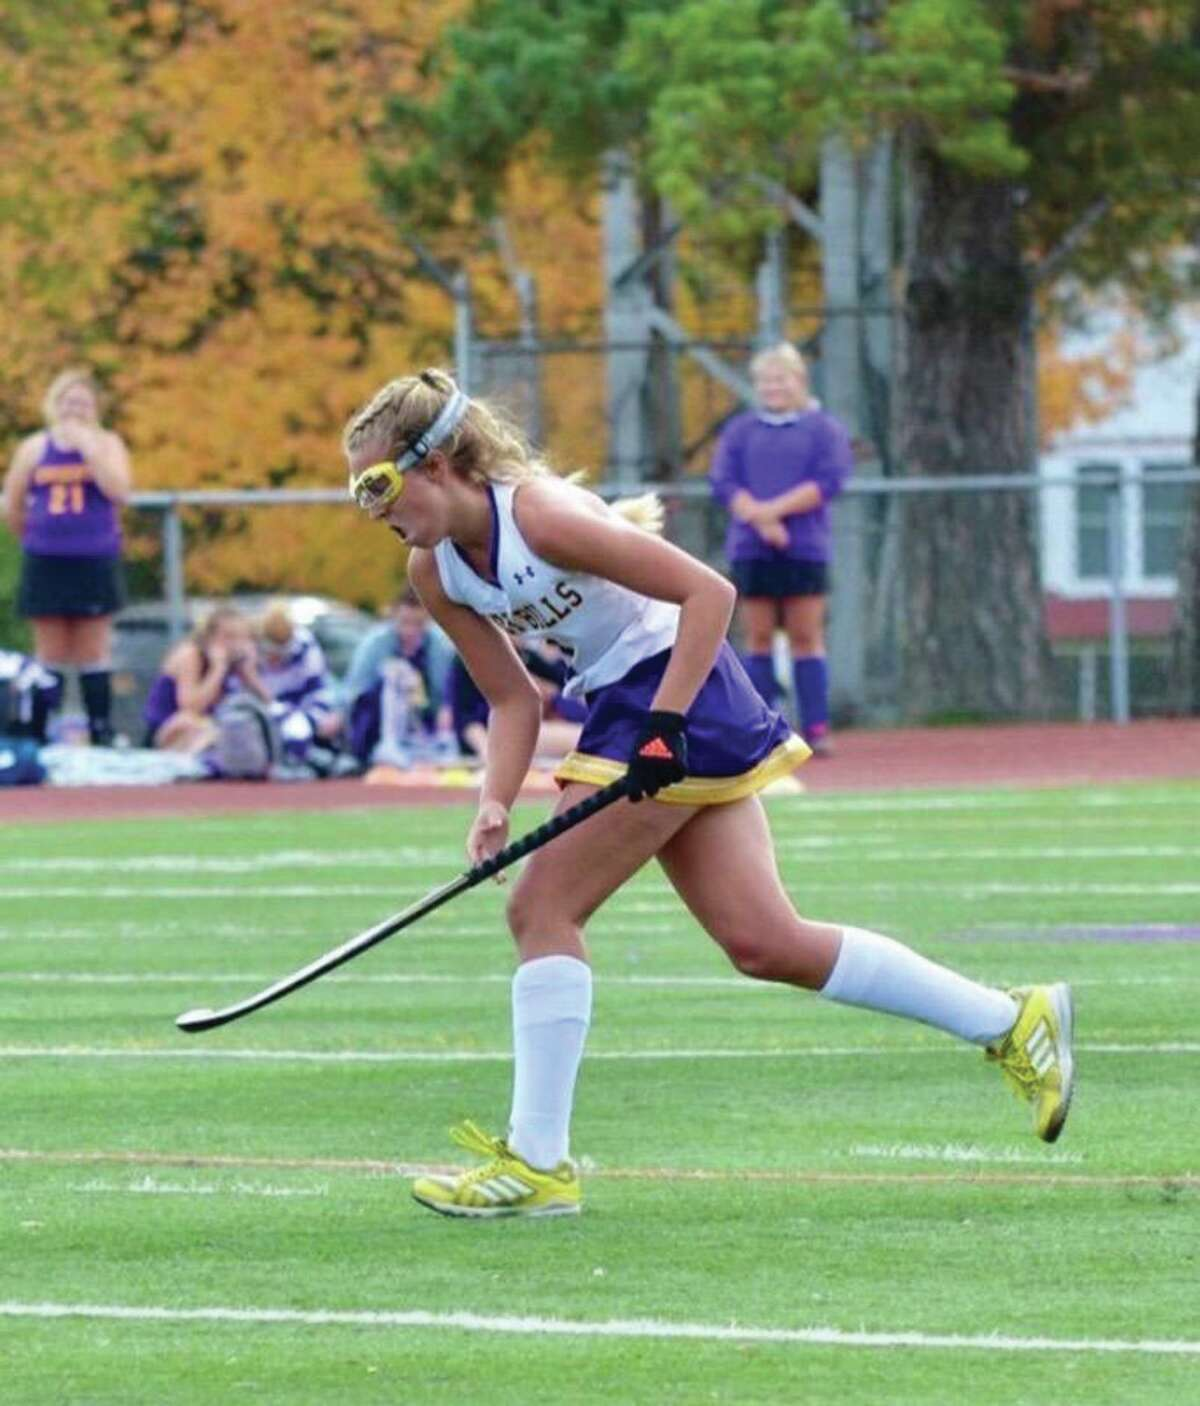 Field hockey: Taryn Ringer from Johnstown. Read more.